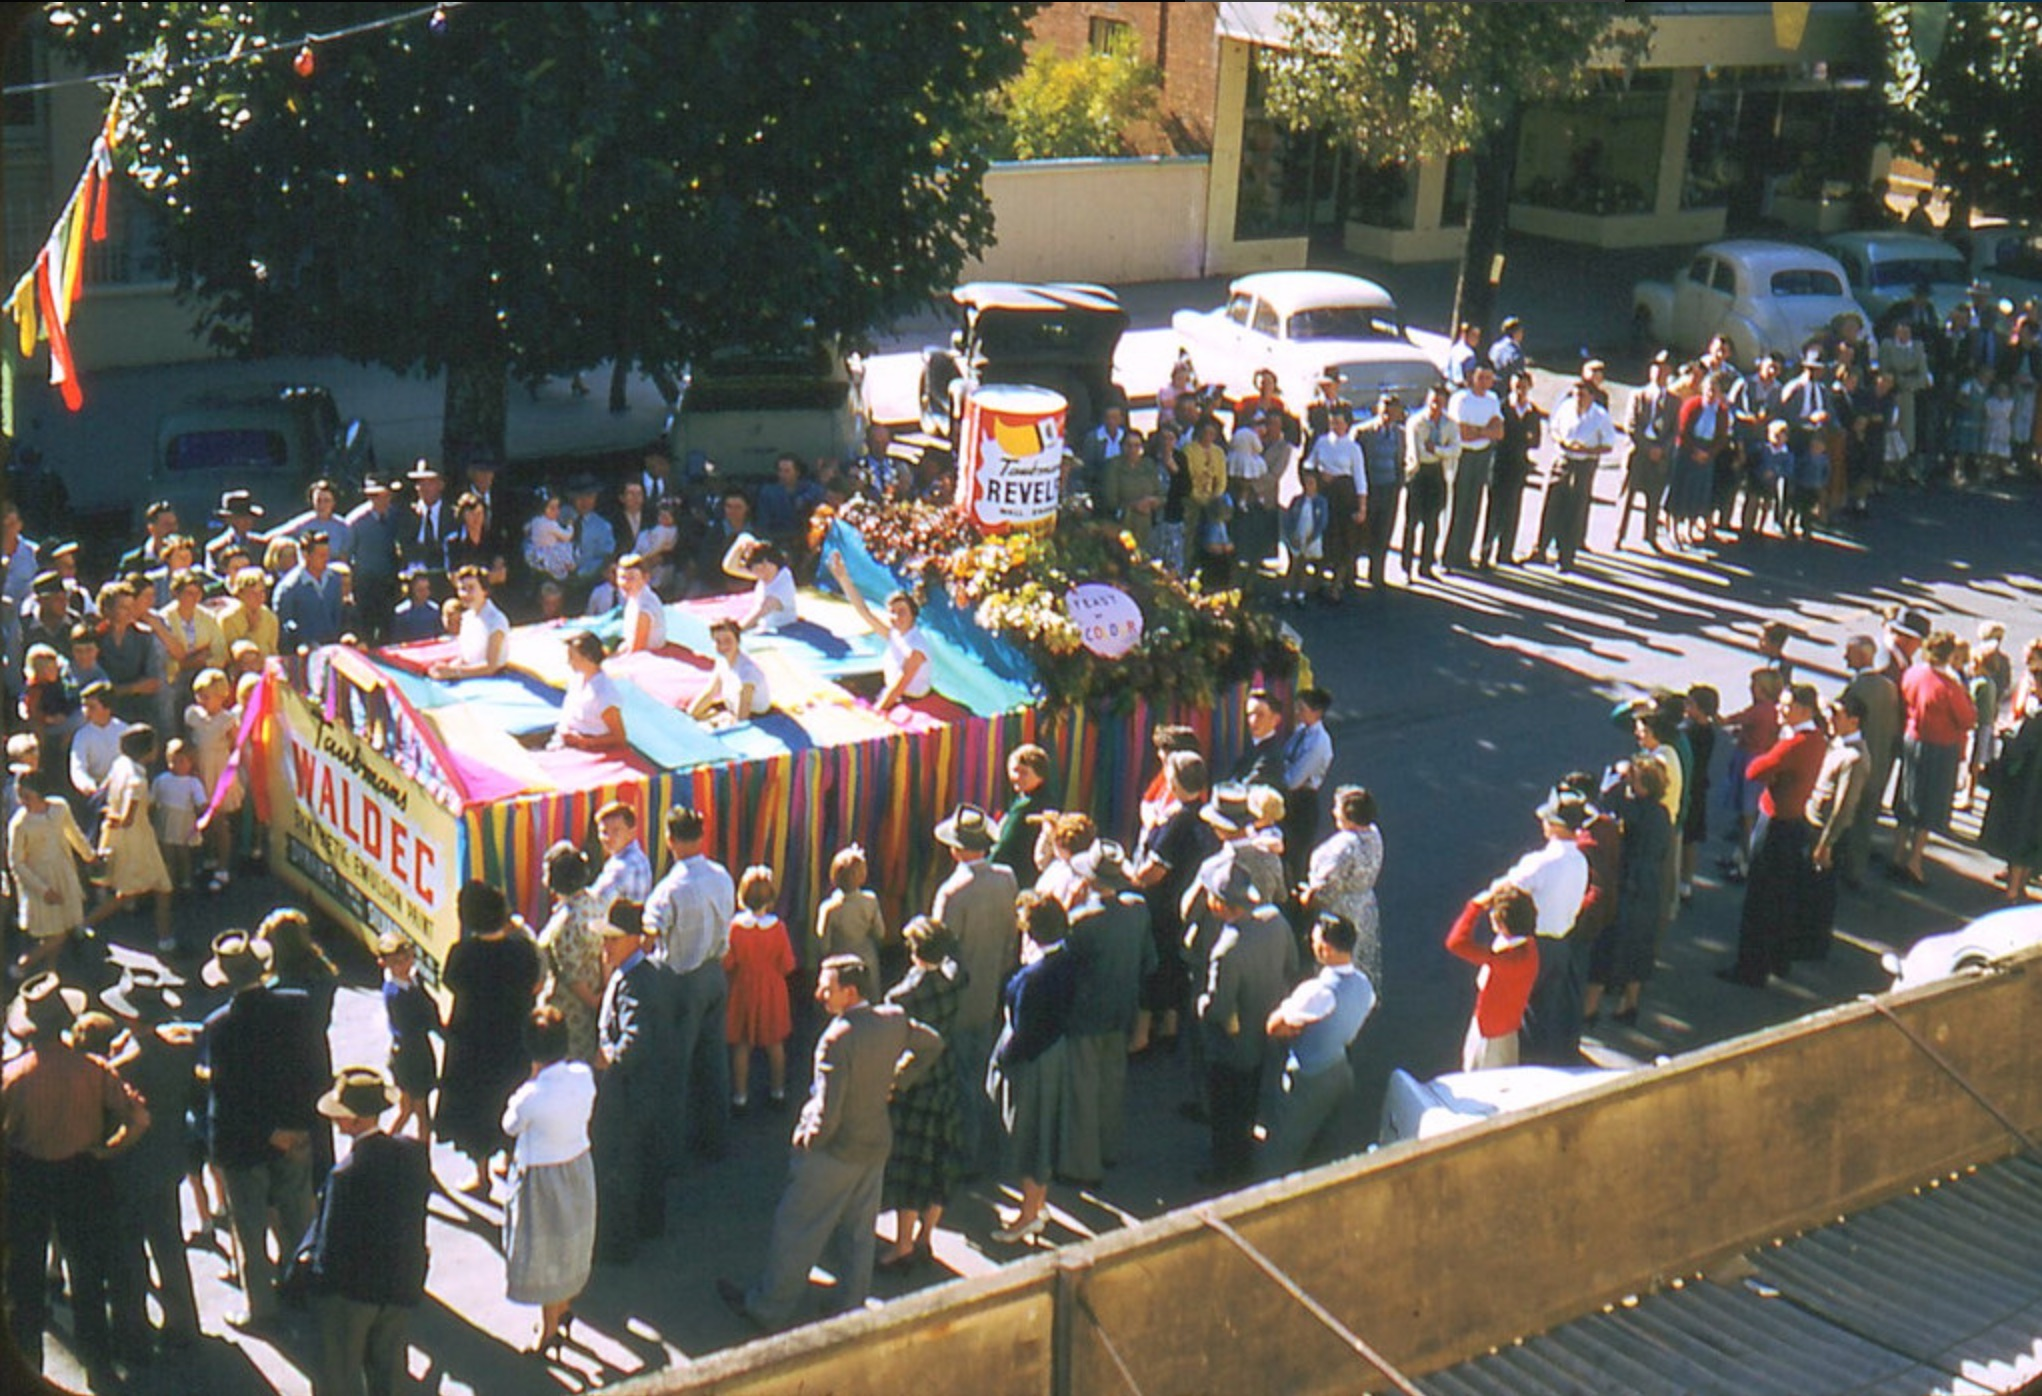 Tumut_Parade___Flickr_-_Photo_Sharing_